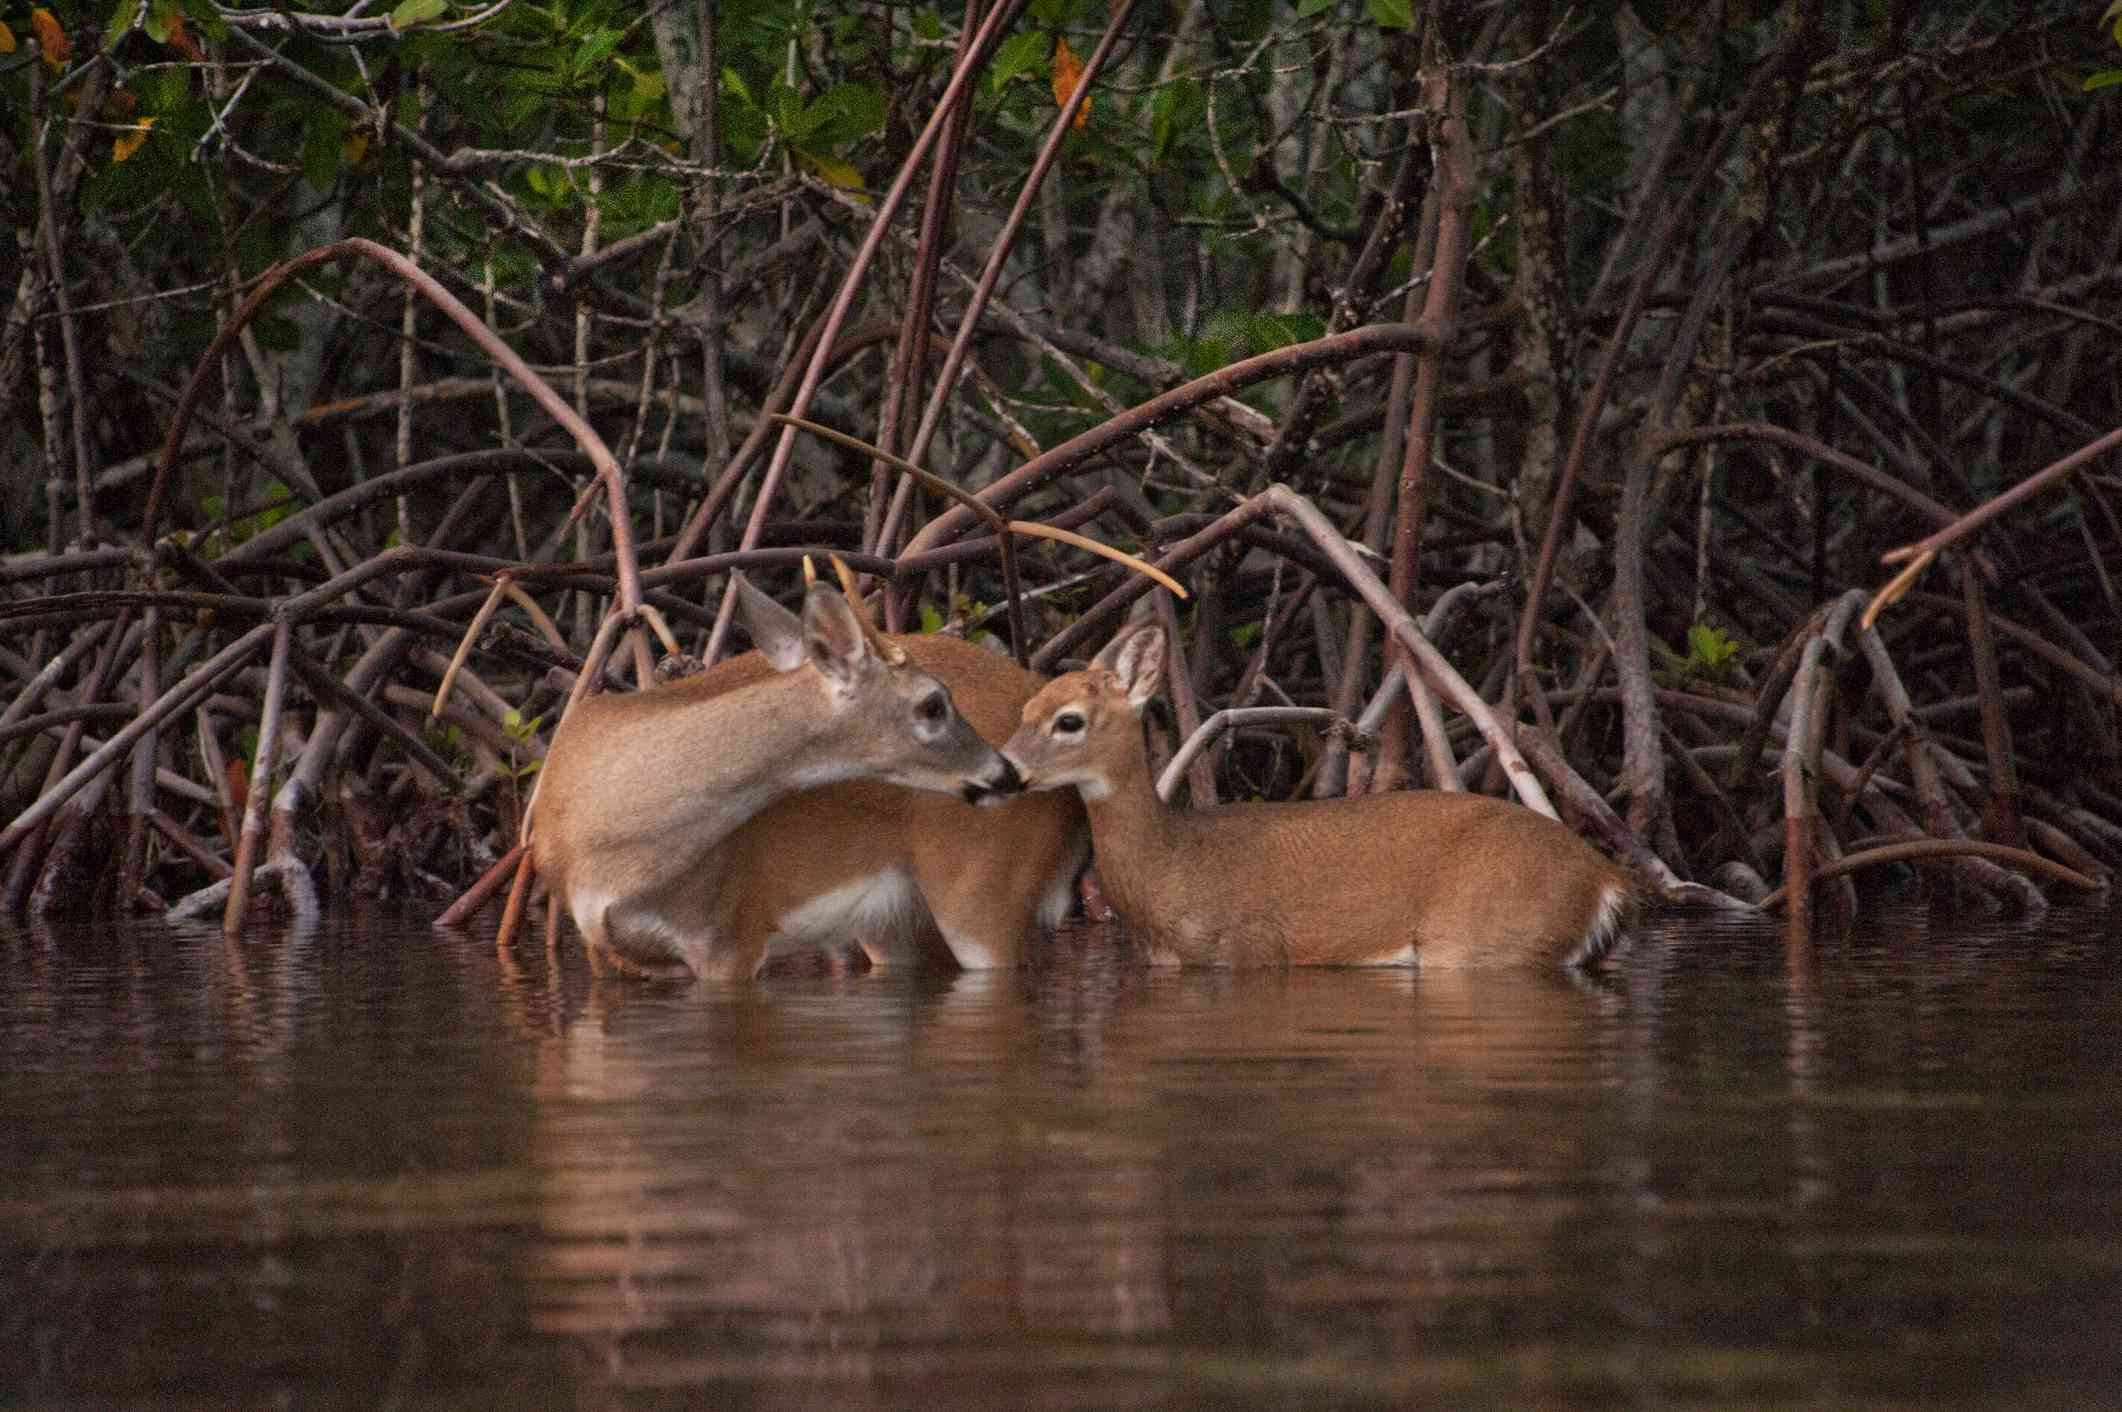 A female key deer with her fawn standing in water next to a mangrove